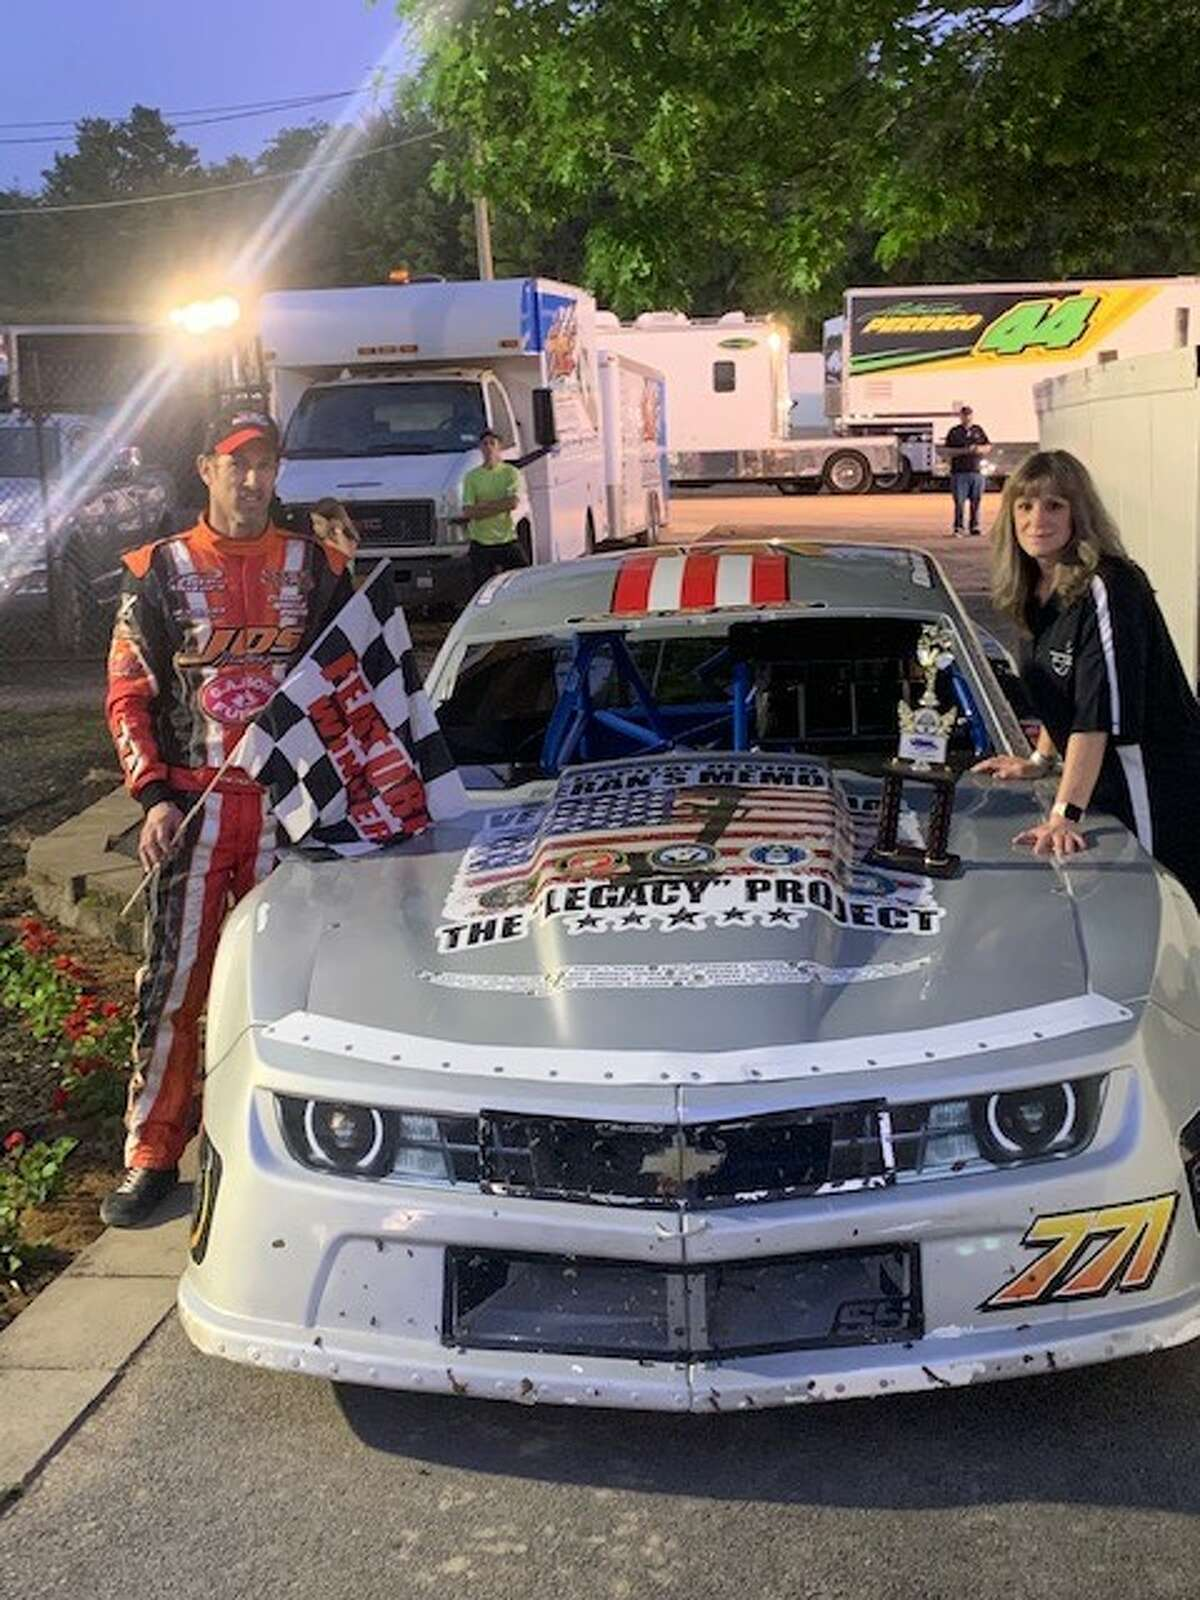 James and Justine Crowley-Duncan stand near their stockcar that promotes the Capital Region Veterans Memorial Legacy Project.